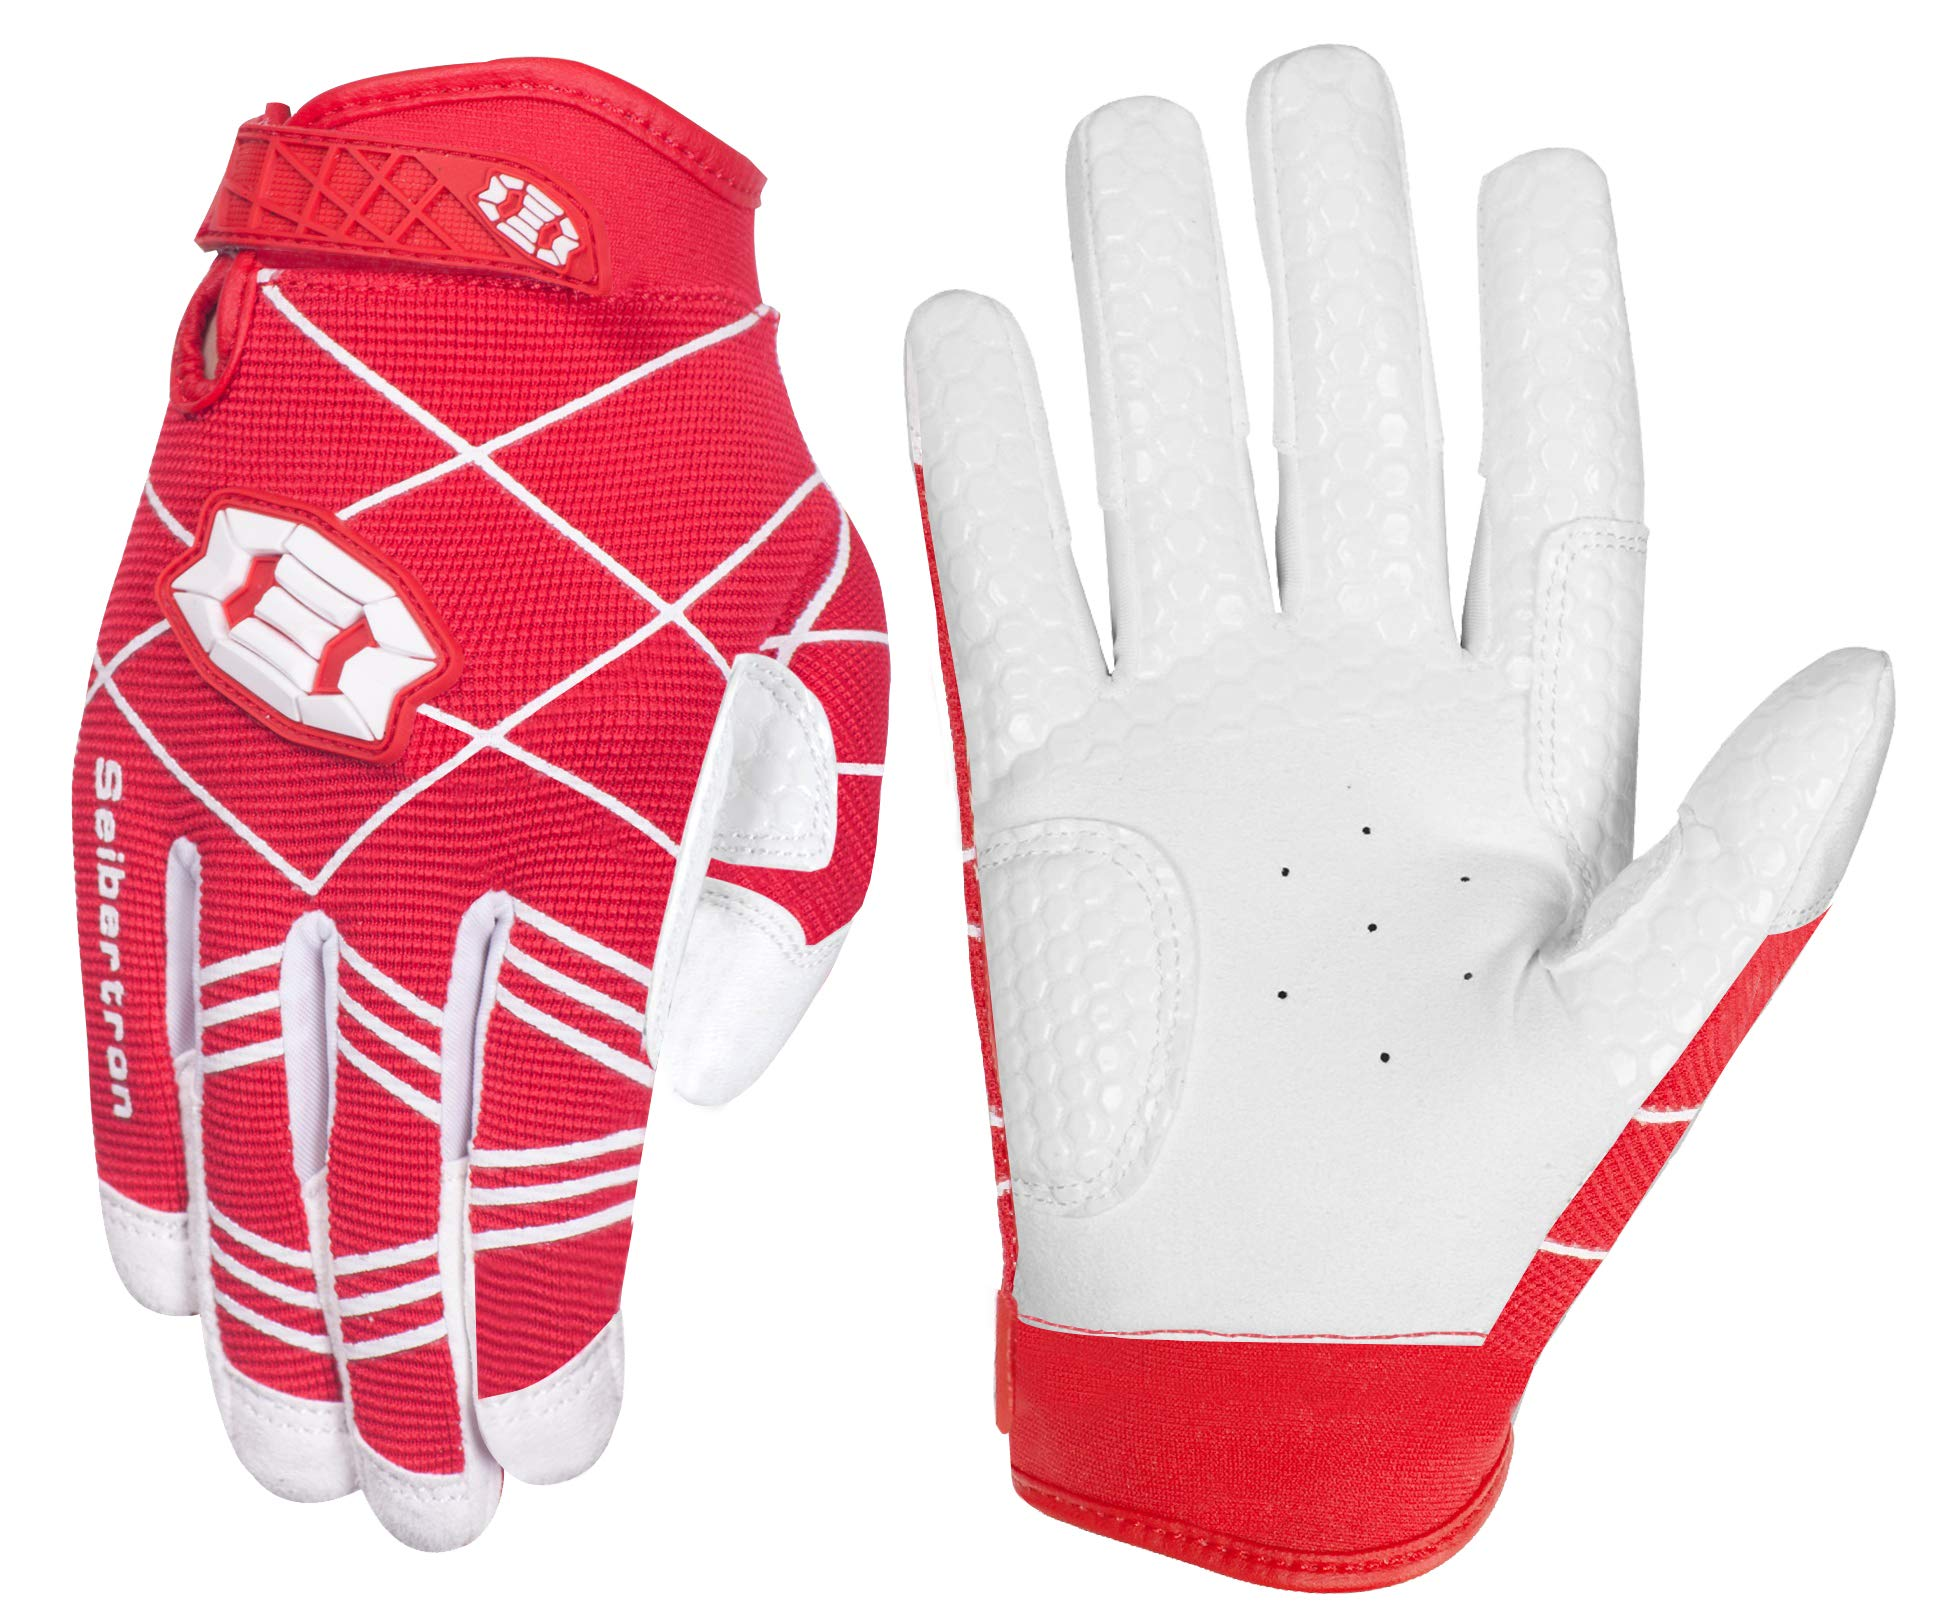 Seibertron B-A-R PRO 2.0 Signature Baseball/Softball Batting Gloves Super Grip Finger Fit for Youth (Red,XS)